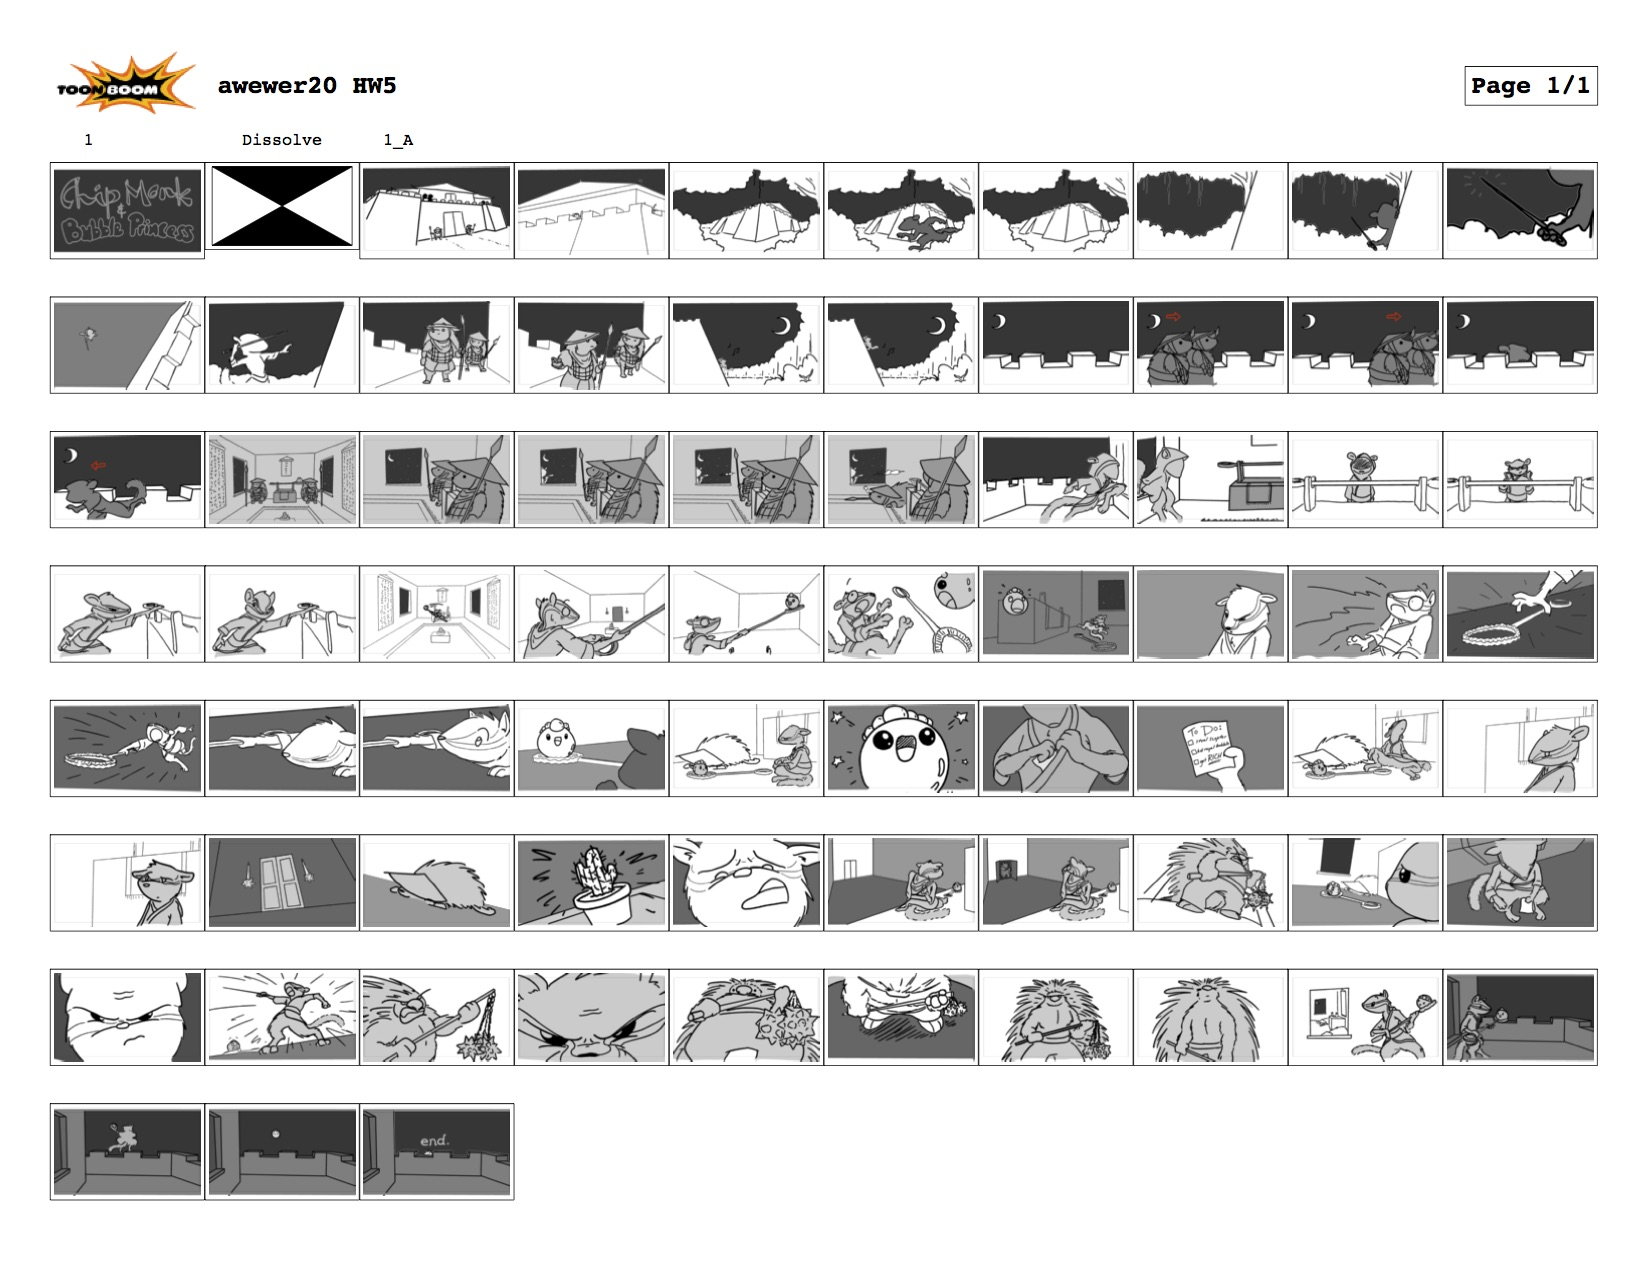 graduate storyboarding class assignment involving three unrelated words